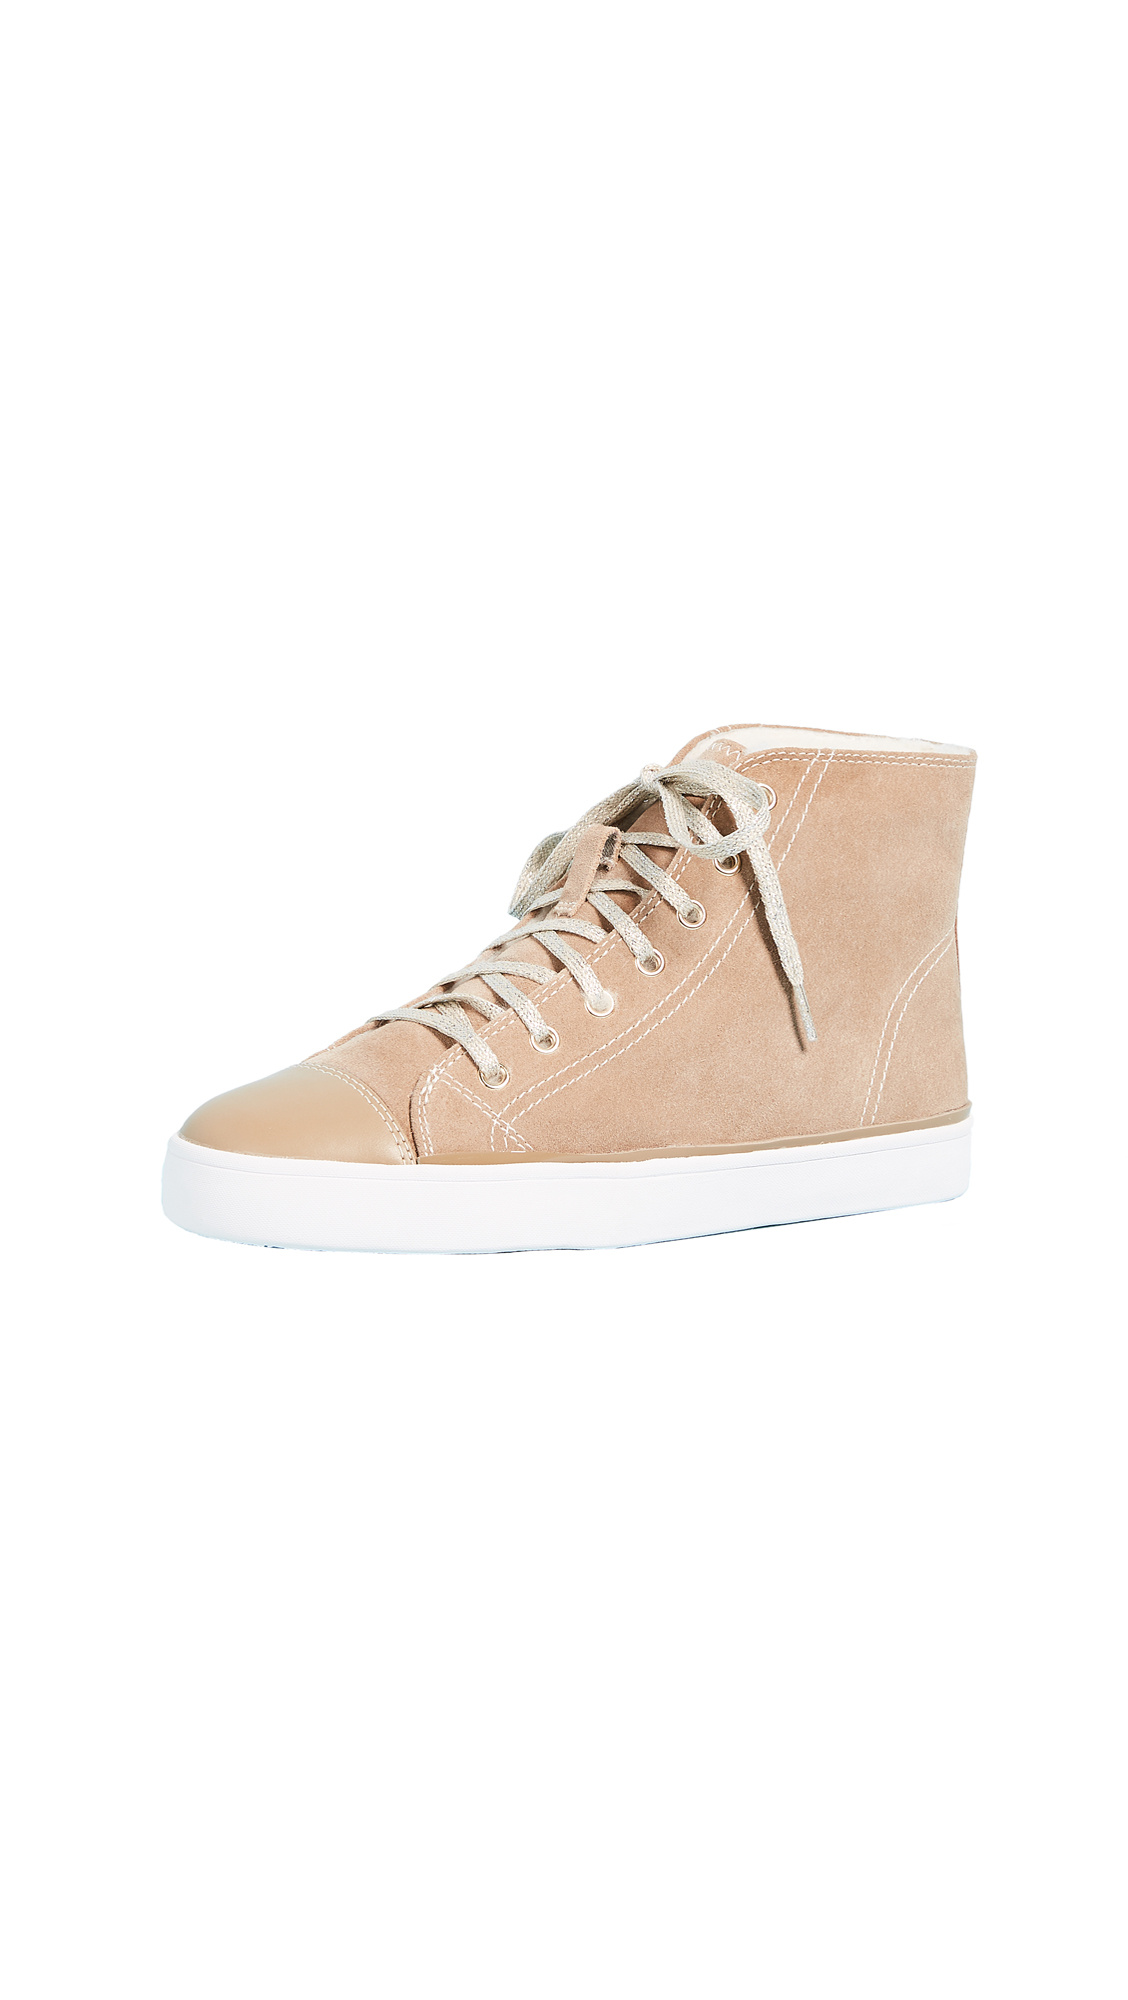 Kate Spade New York Lendal High Top Sneakers - Camel